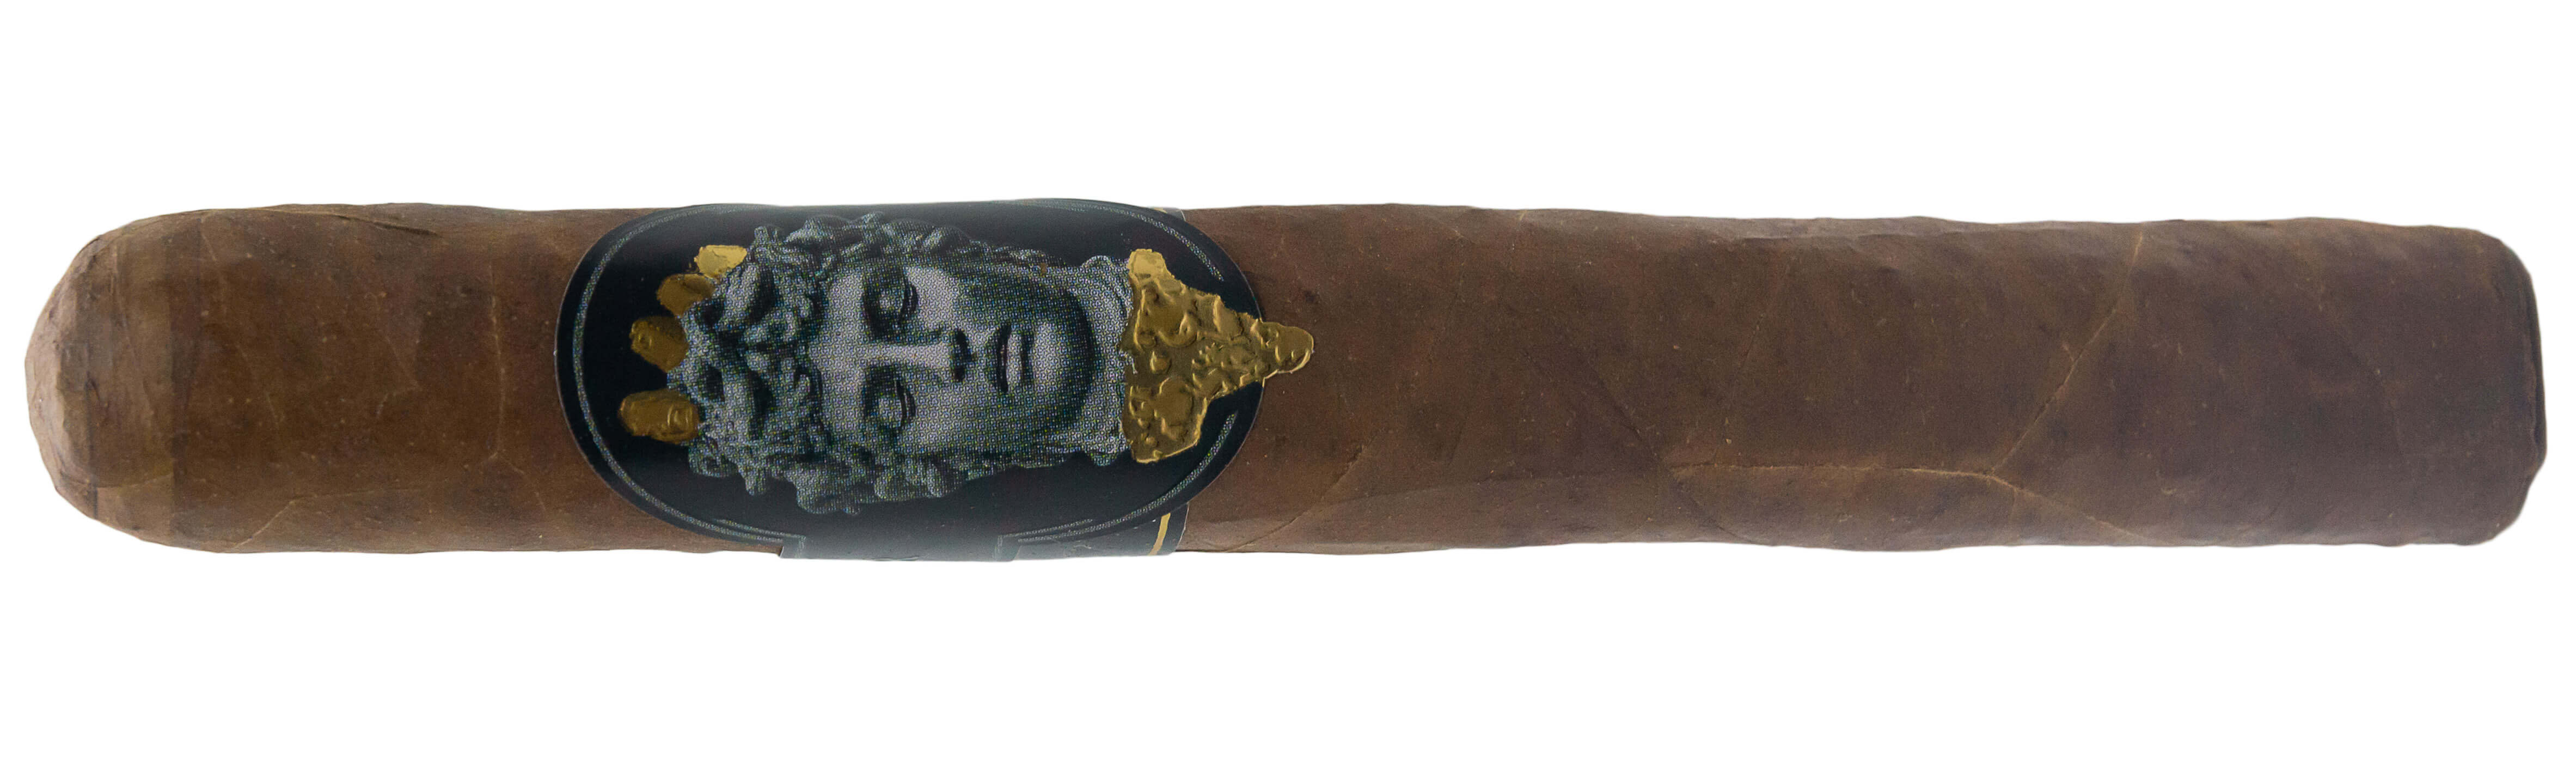 Blind Cigar Review: Alec & Bradley | Gatekeeper Toro